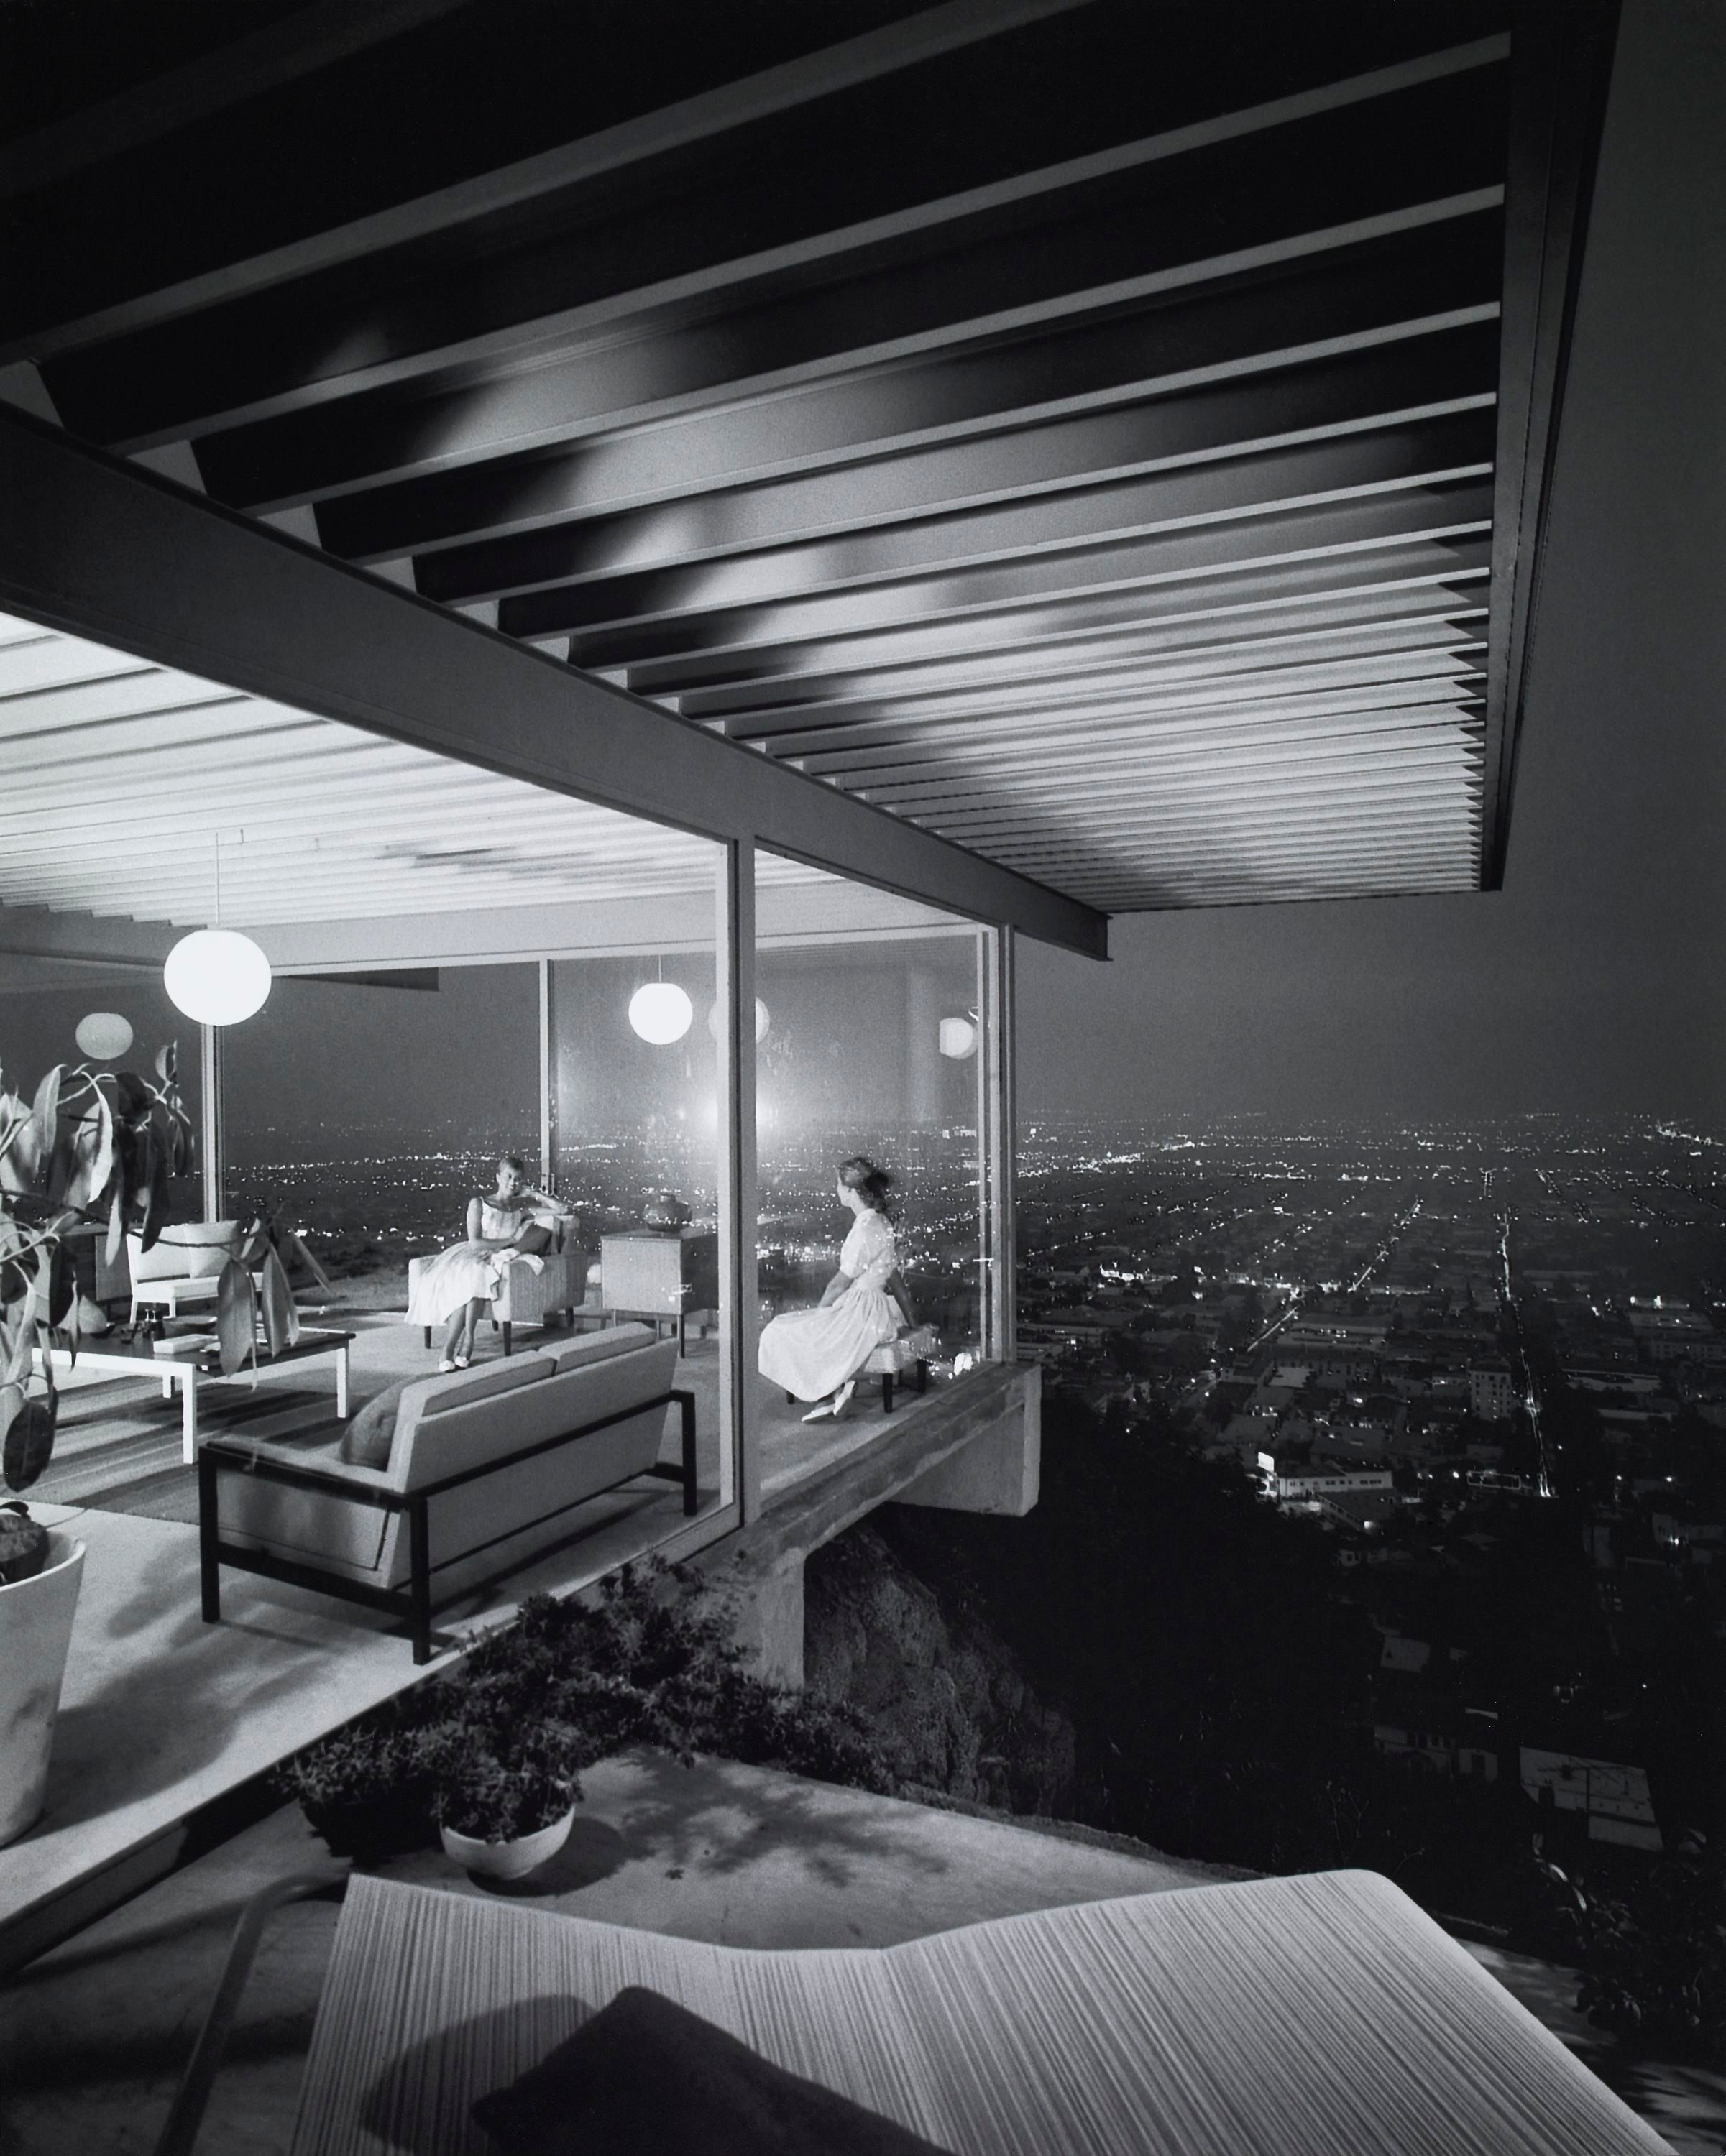 Case Study House No. 22, 1960, Julius Shulman. The Getty Research Institute, 2004.R.10. © J. Paul Getty Trust